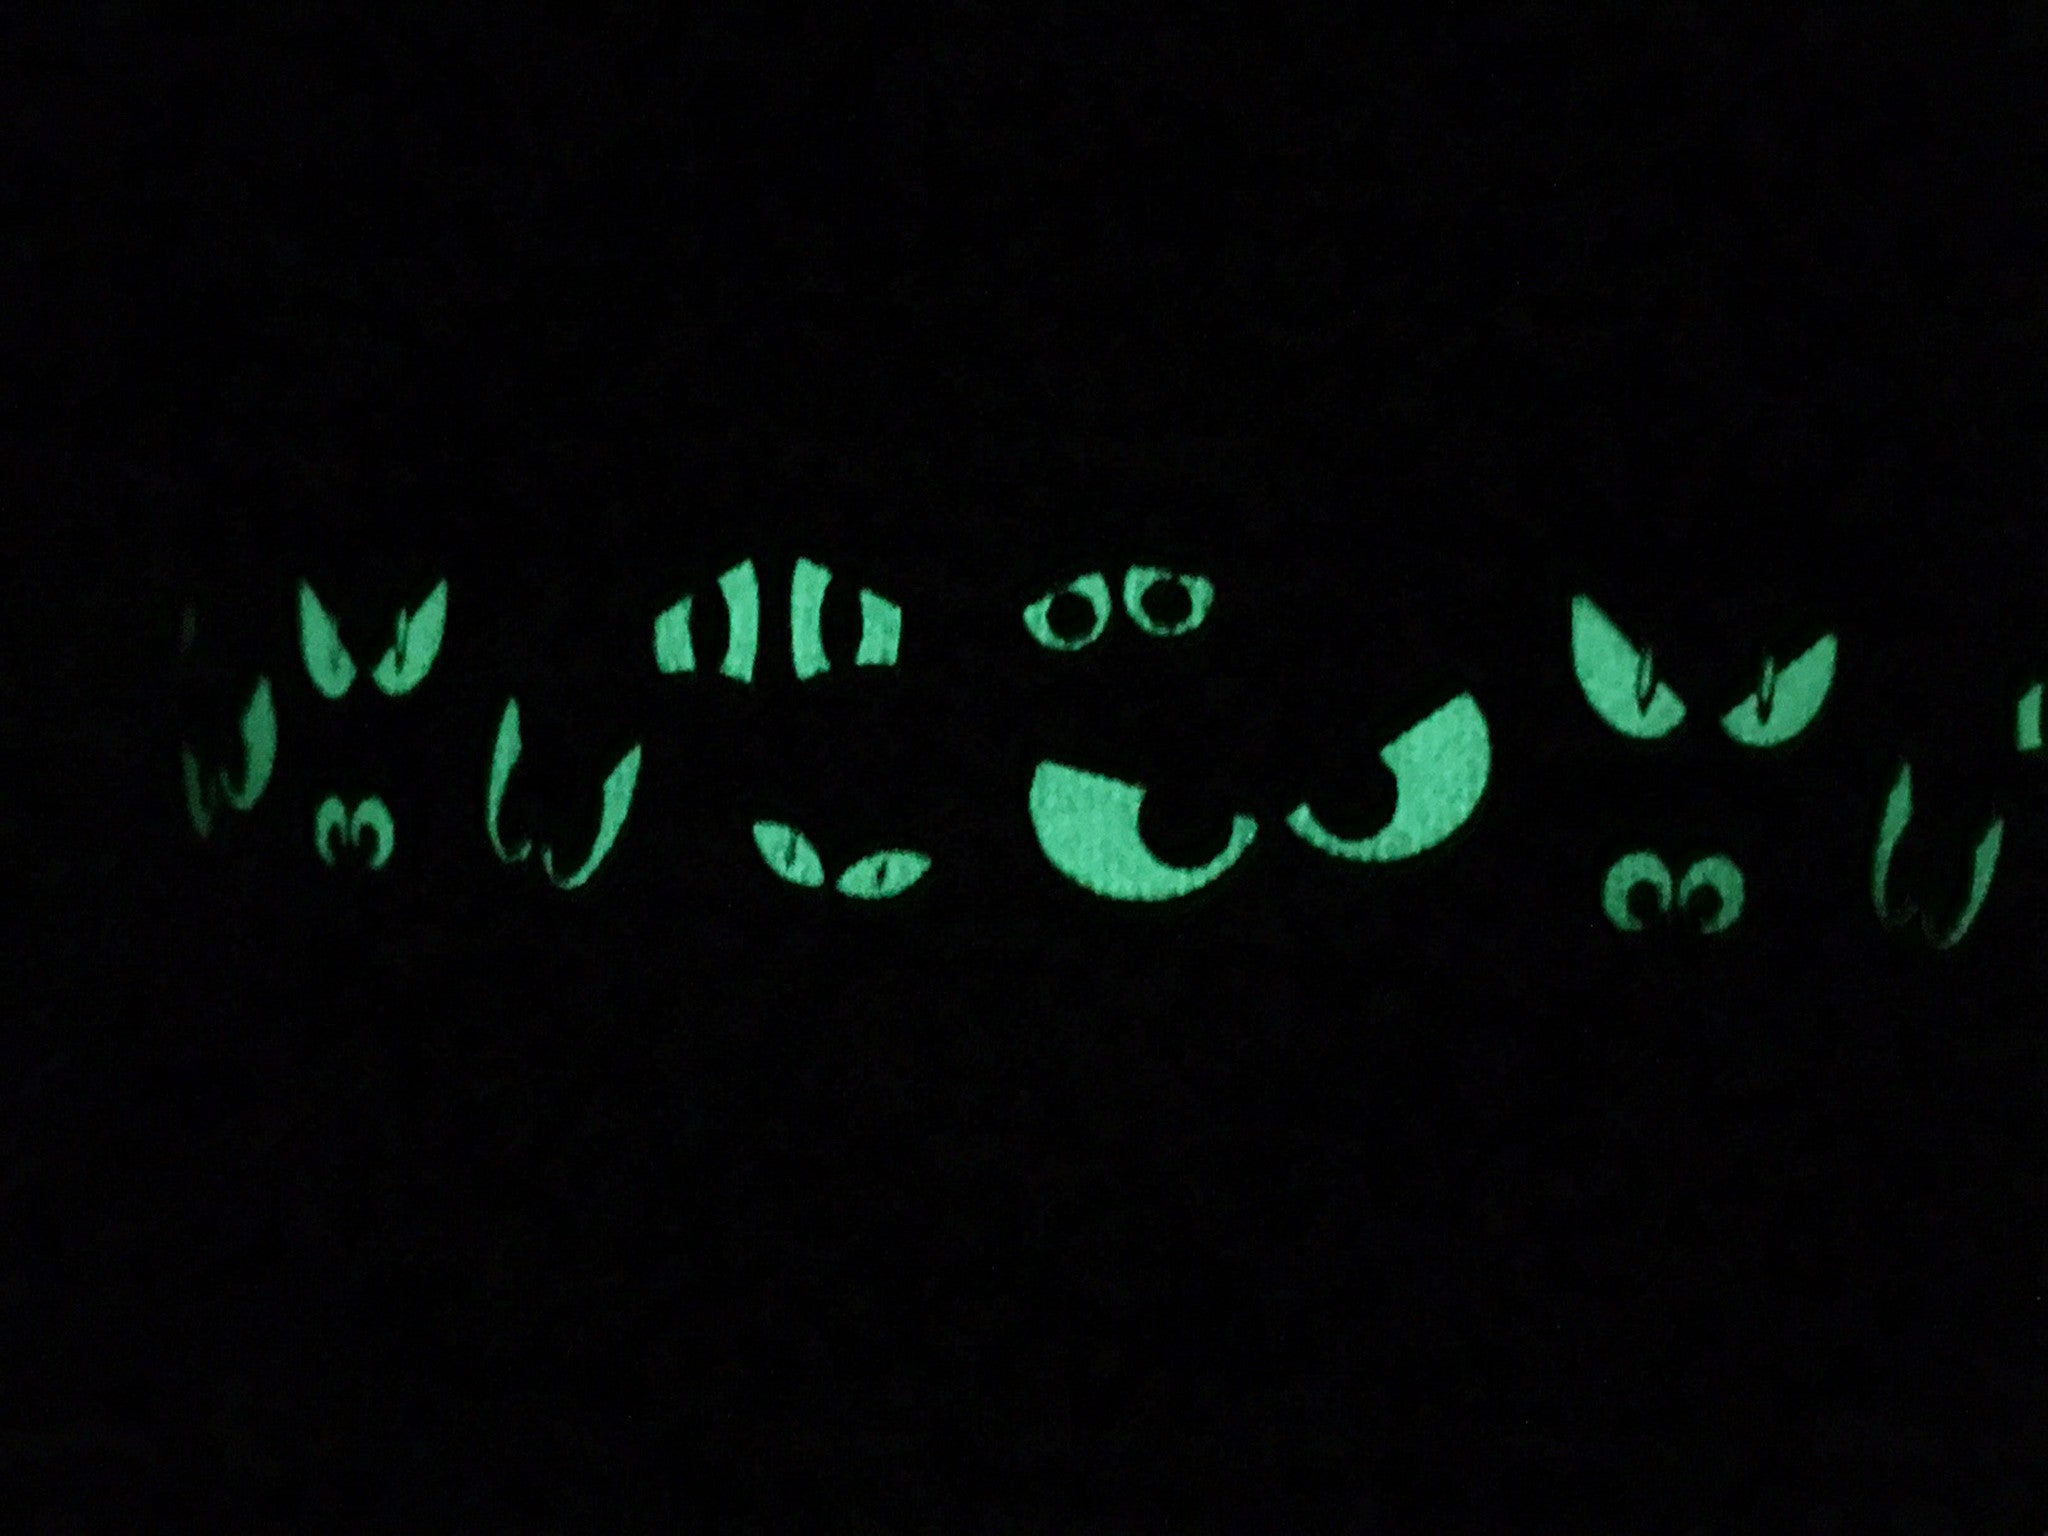 Spooky Eyes Halloween Dog Collar Glow In The Dark You Had Me At Woof